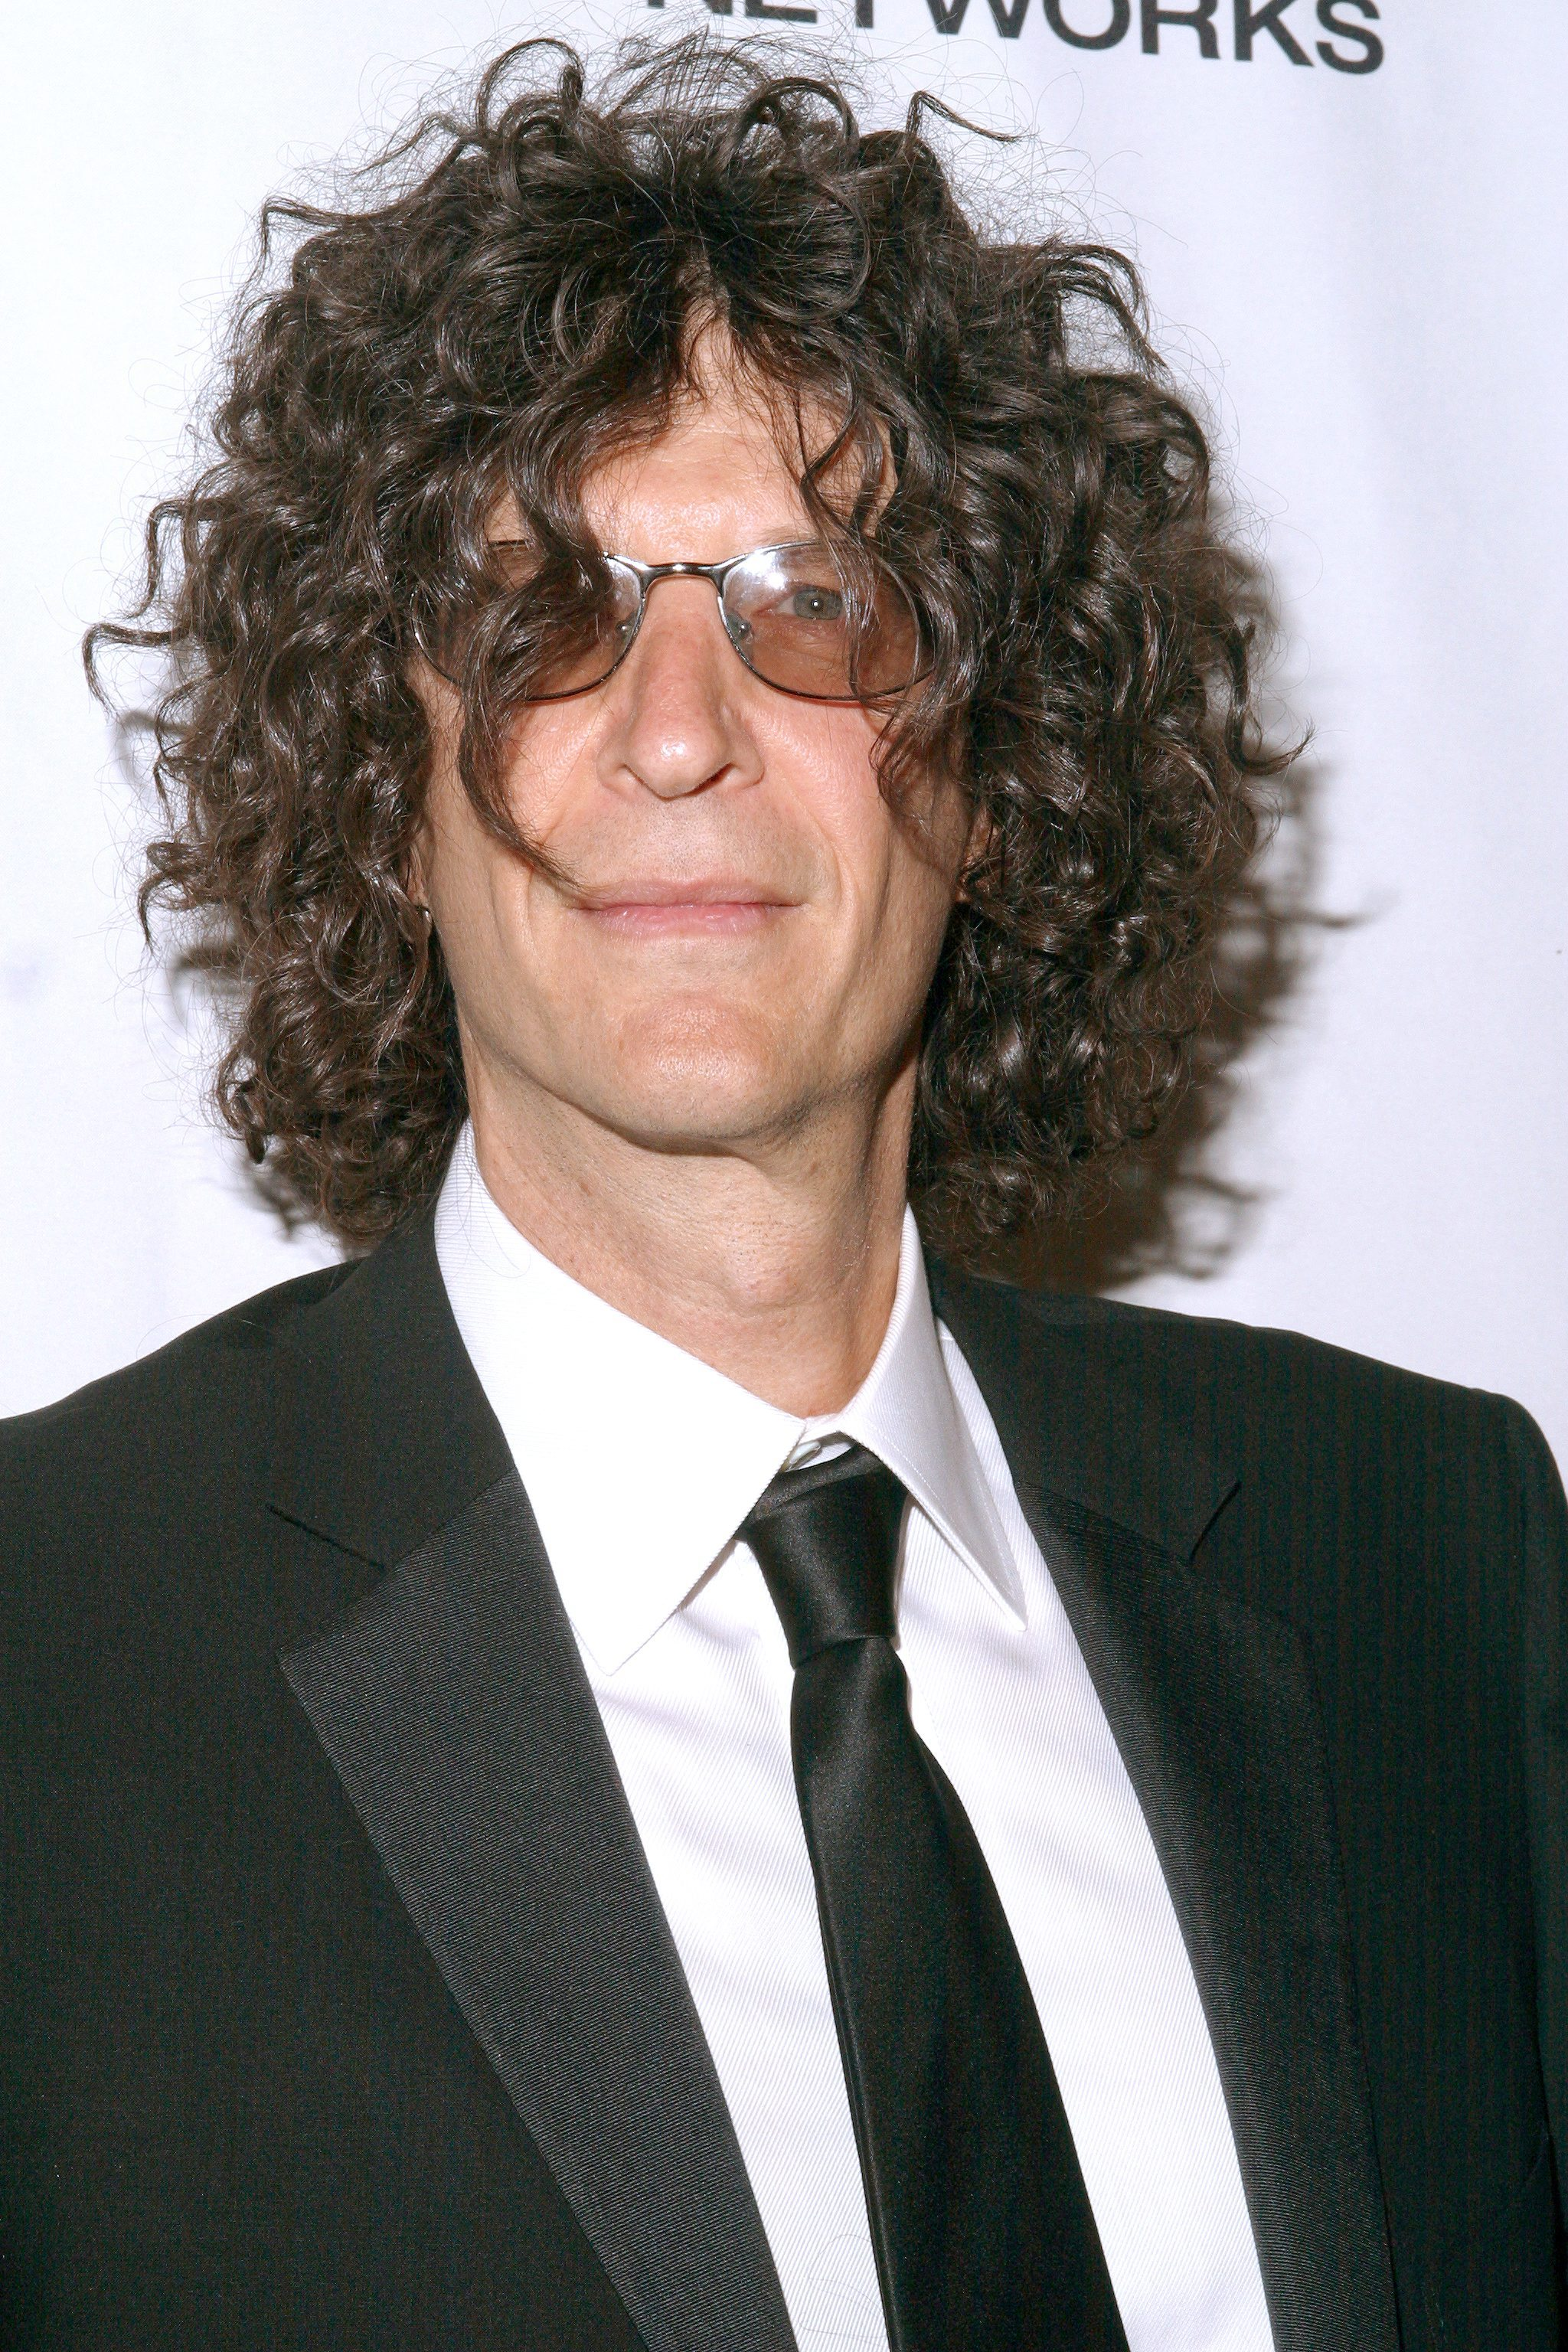 Howard Stern ©Scott Weiner